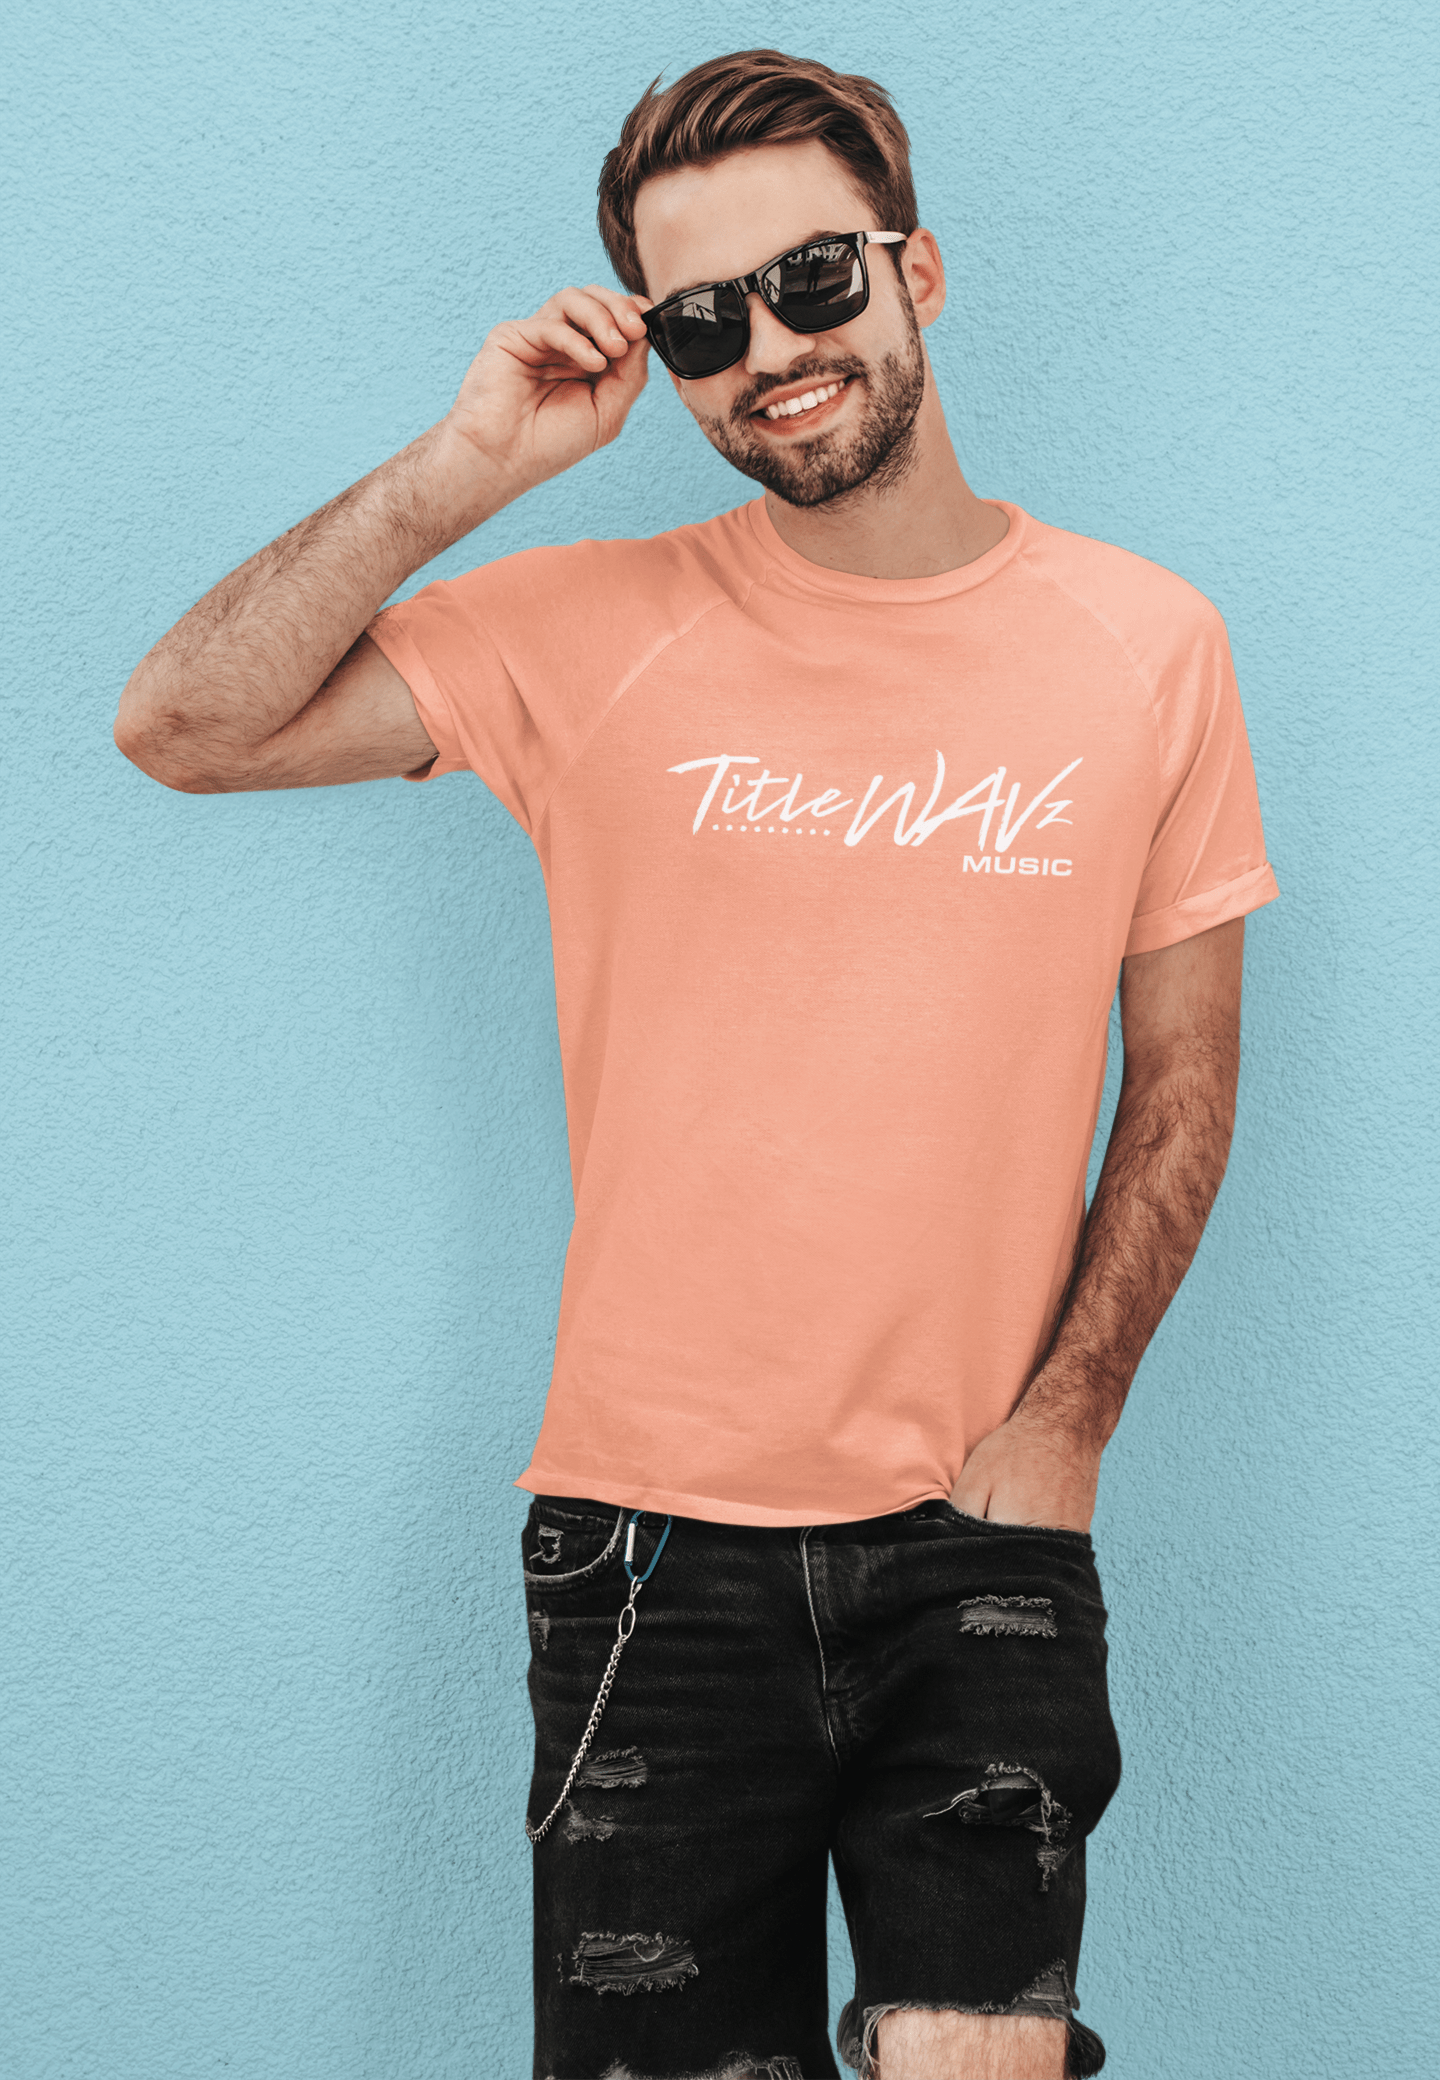 basic-tee-mockup-featuring-a-happy-man-with-sunglasses-leaning-against-a-colored-wall-m1504-r-el2